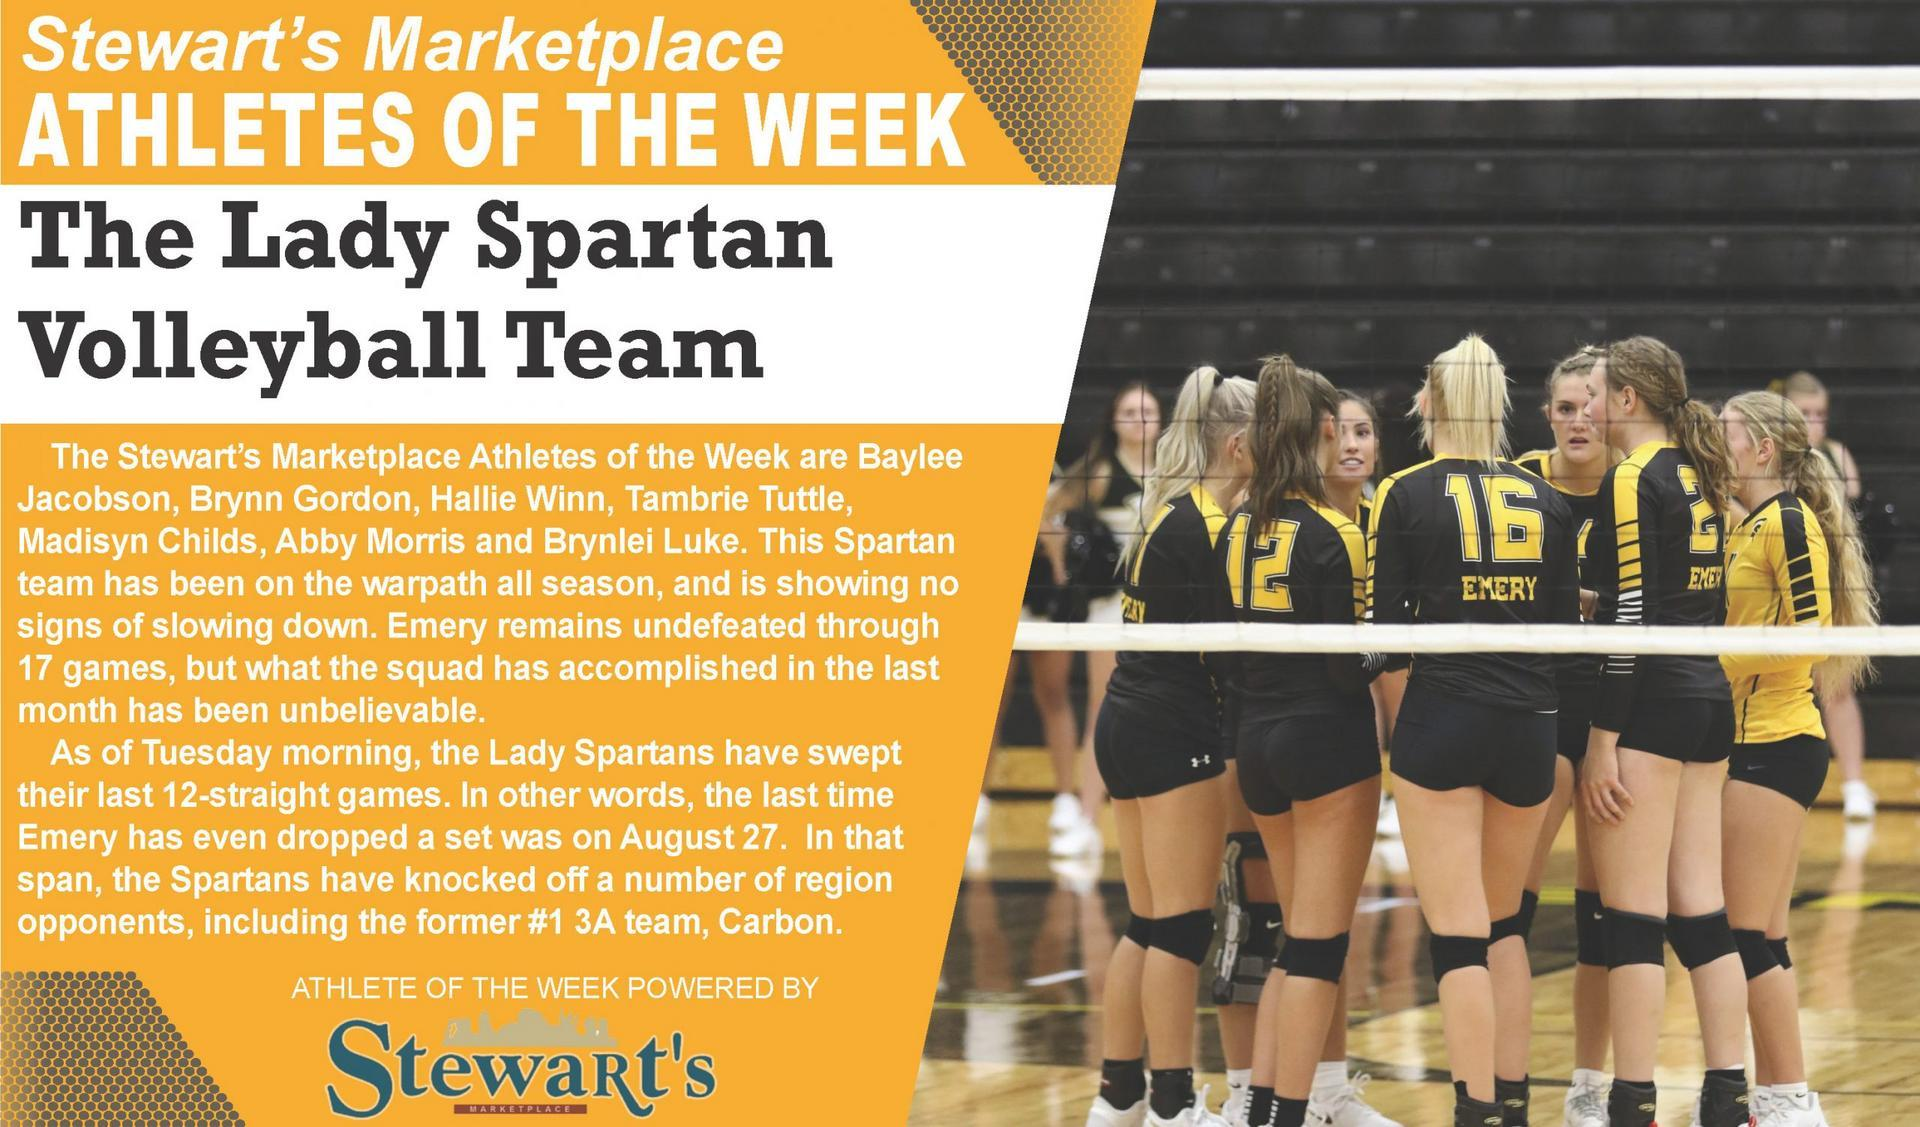 Emery-Athlete-of-the-Week-Volleyball-10.6.21-scaled.jpg